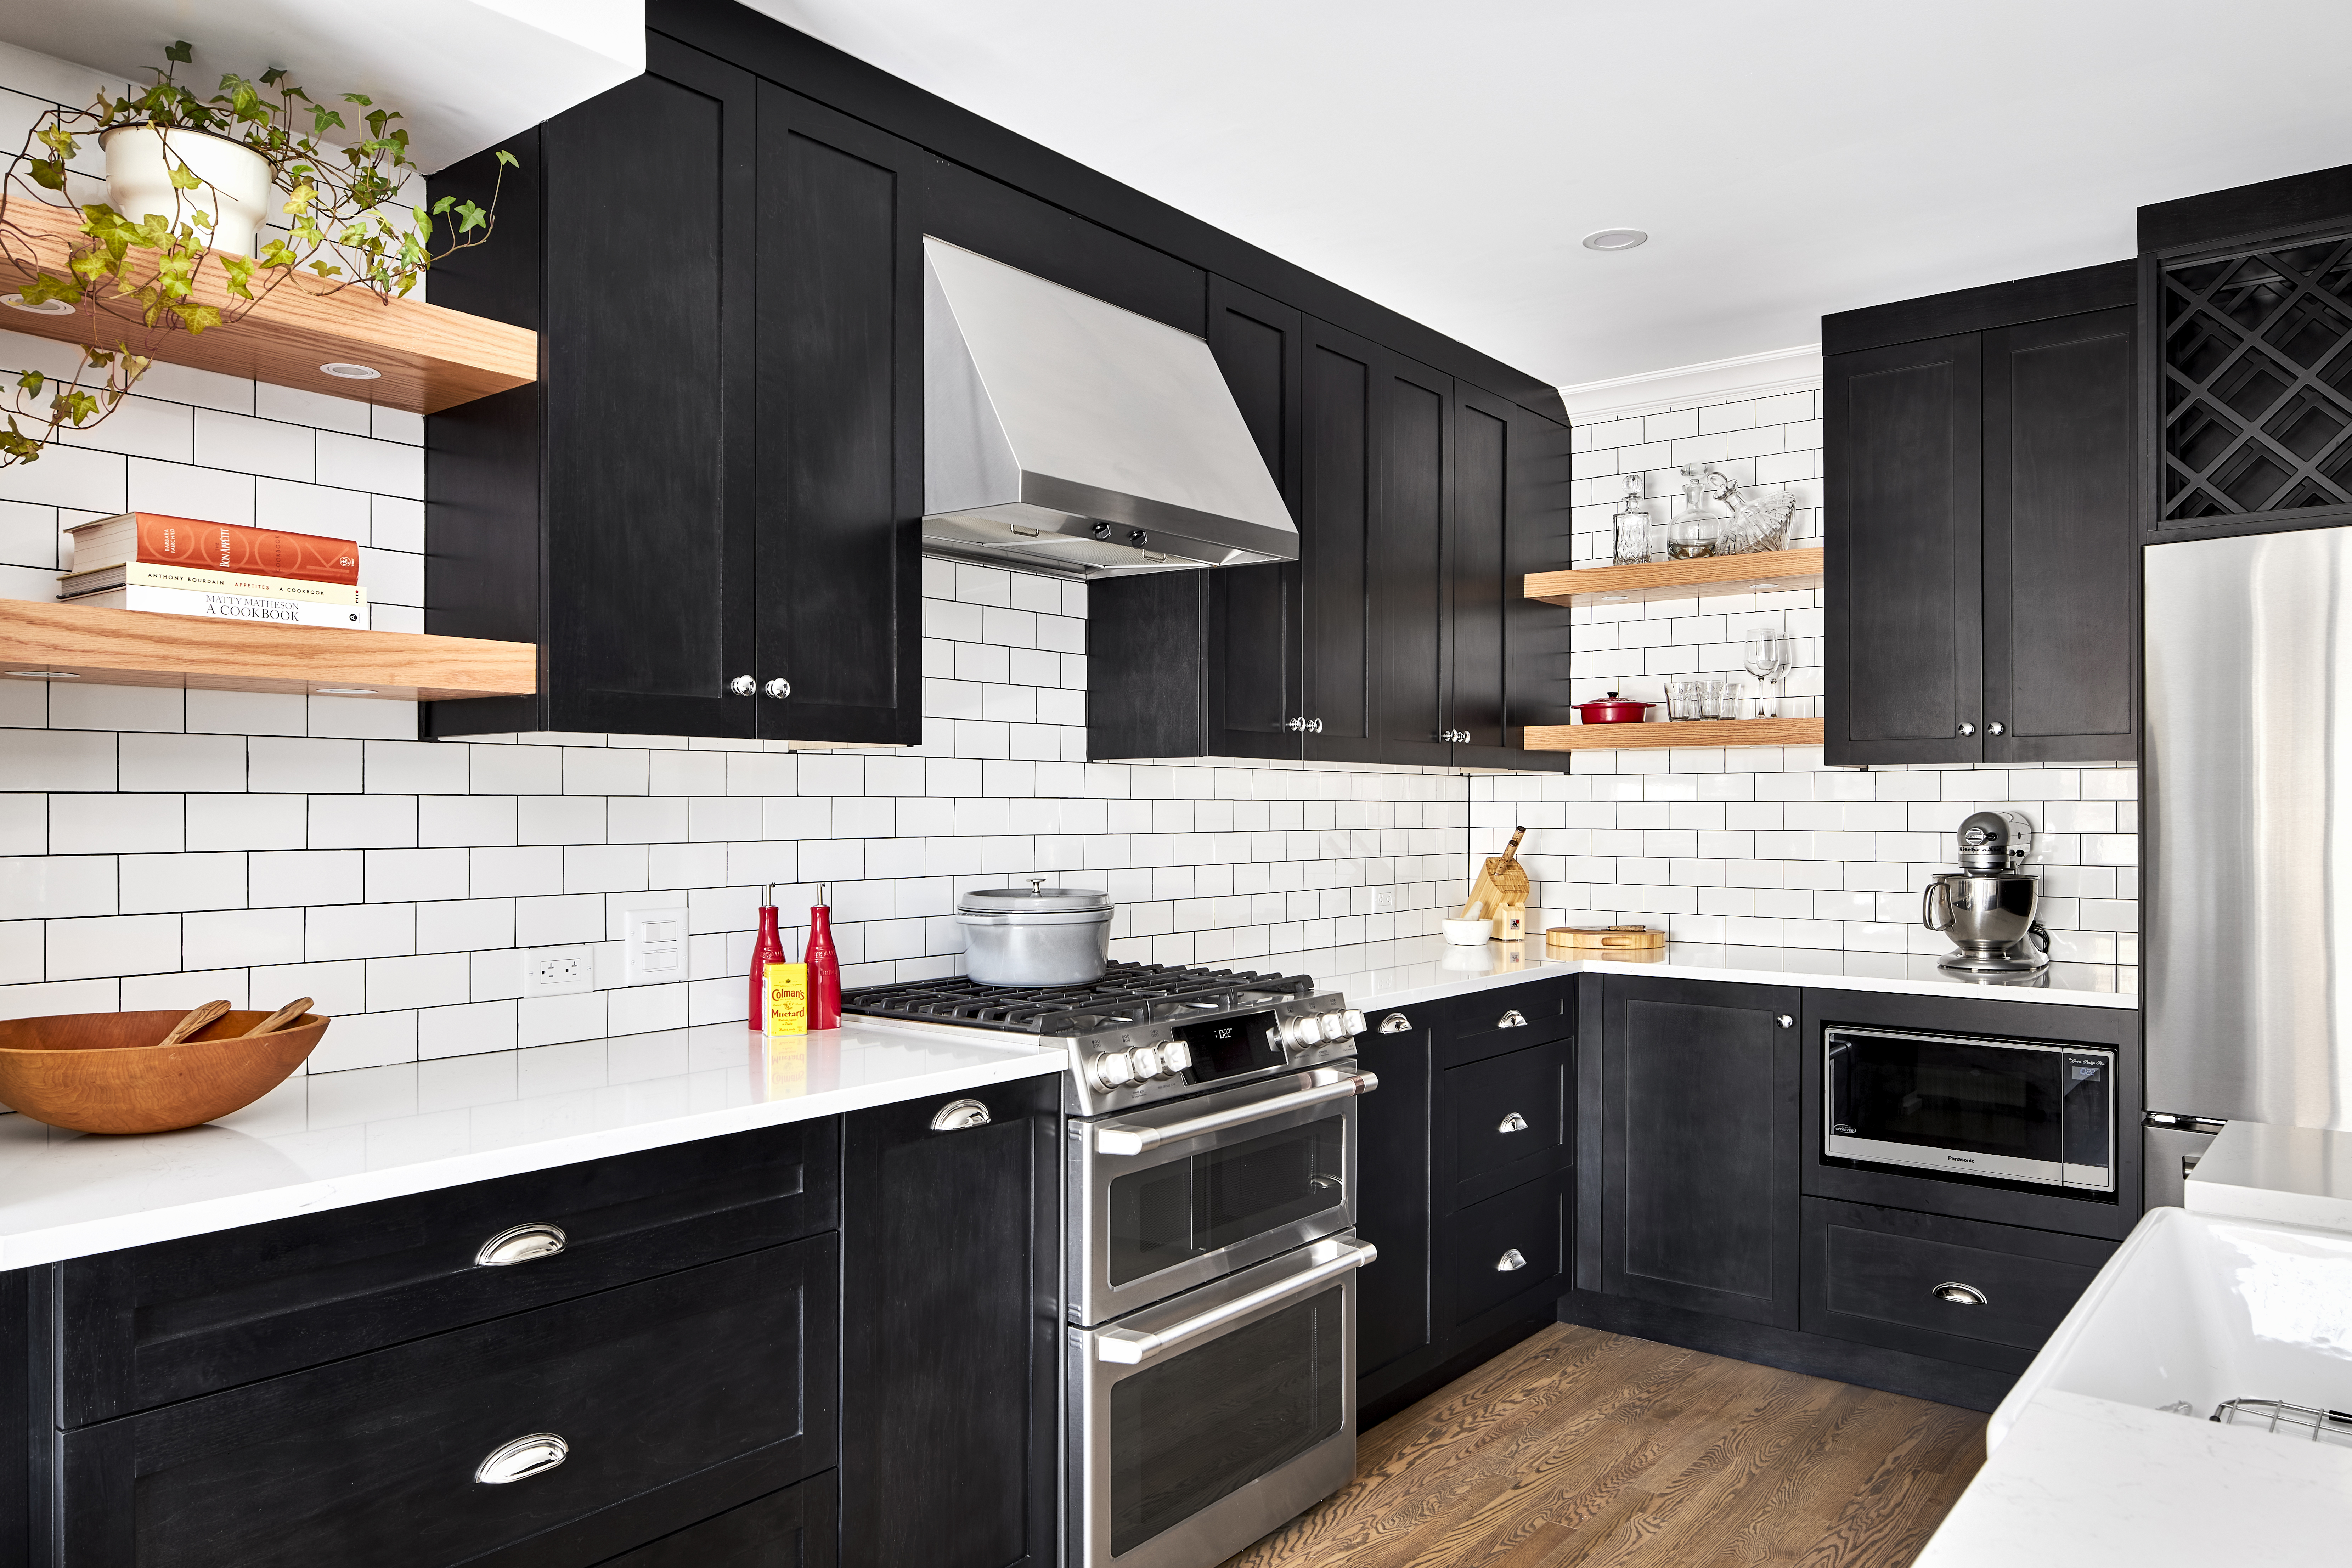 A Deslaurier kitchen with Ebony-stained cabinets.